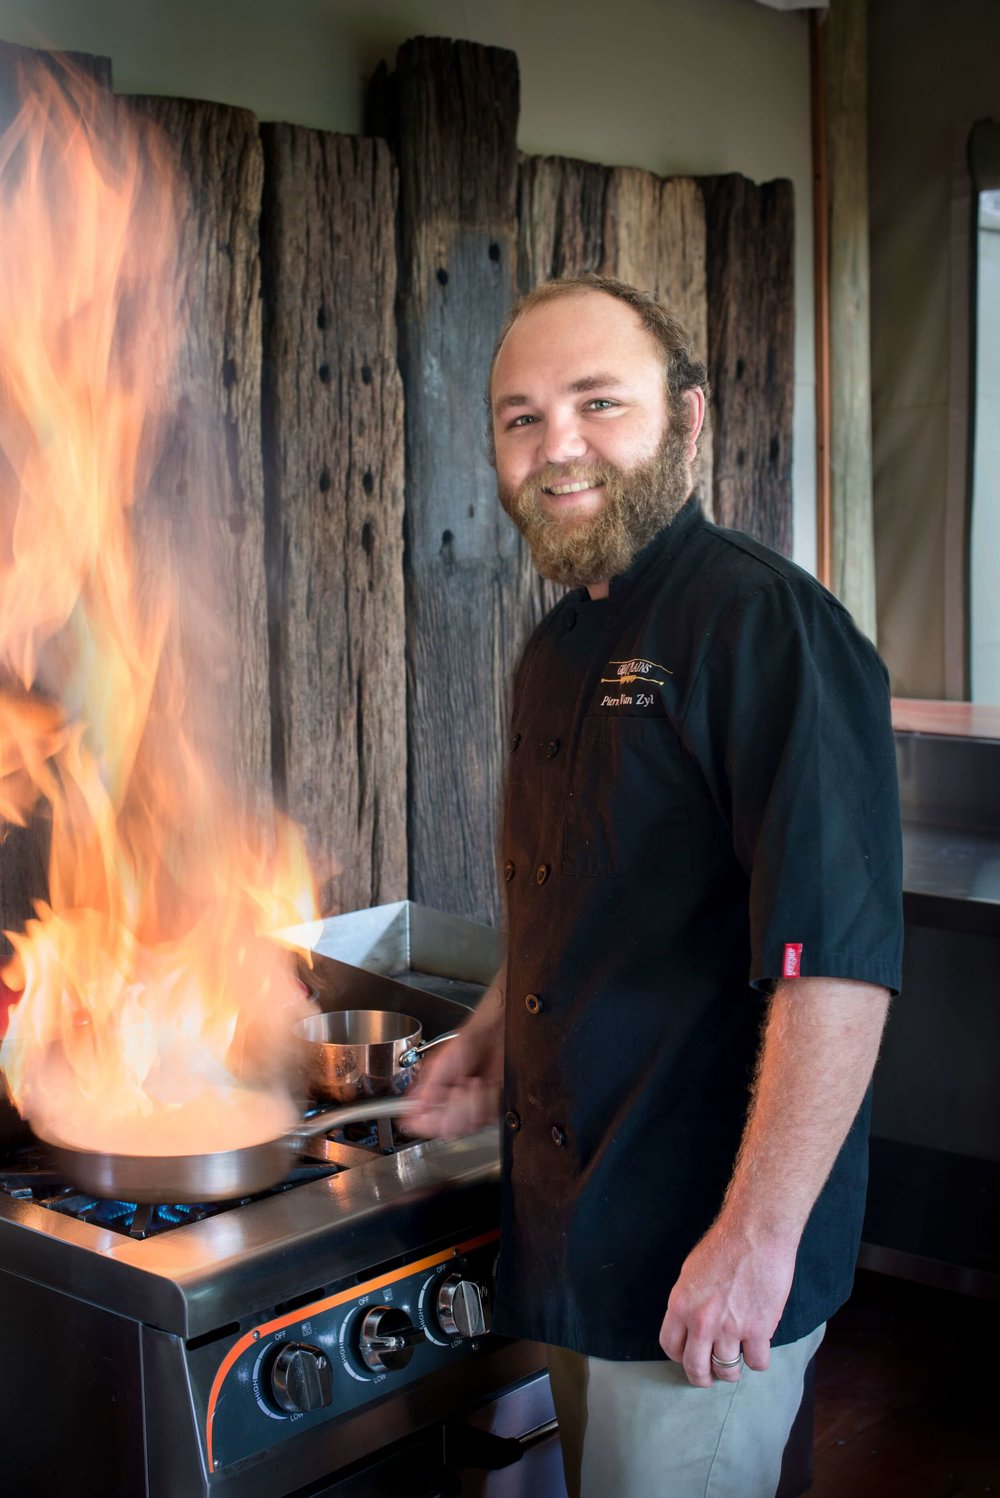 DubaPlains_ExecChef_FlamingChef.jpg